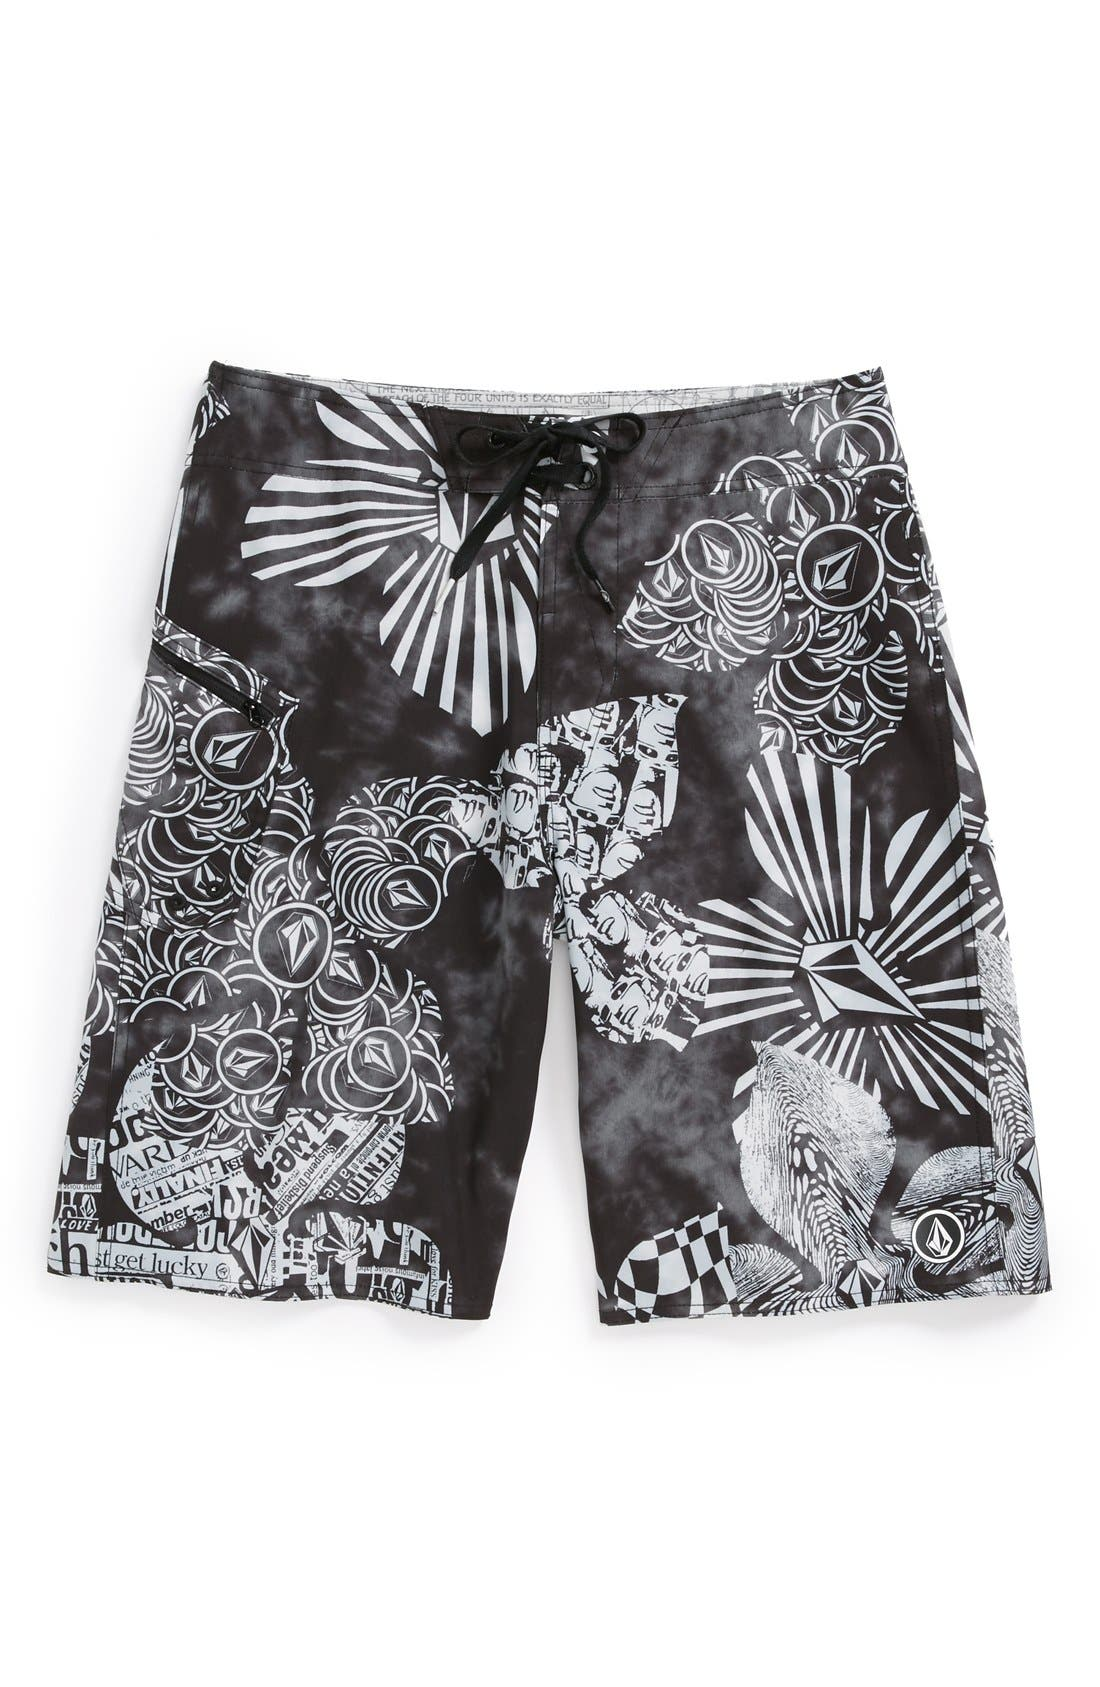 Alternate Image 1 Selected - Volcom 'Lido Weedo' Board Shorts (Little Boys & Big Boys)